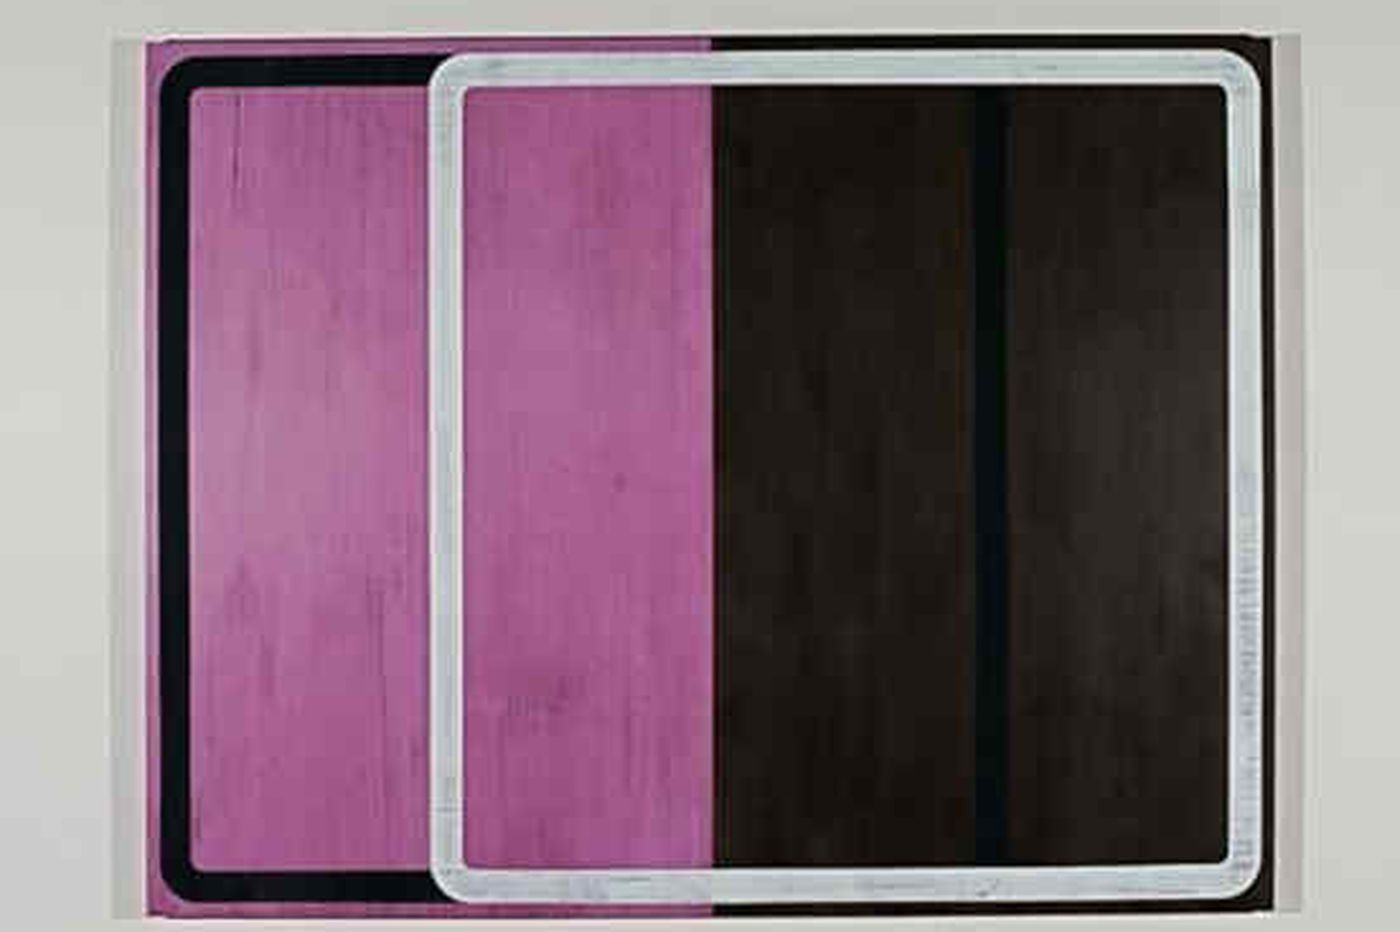 Galleries: Unexpected color combos of Goldberg's abstracts